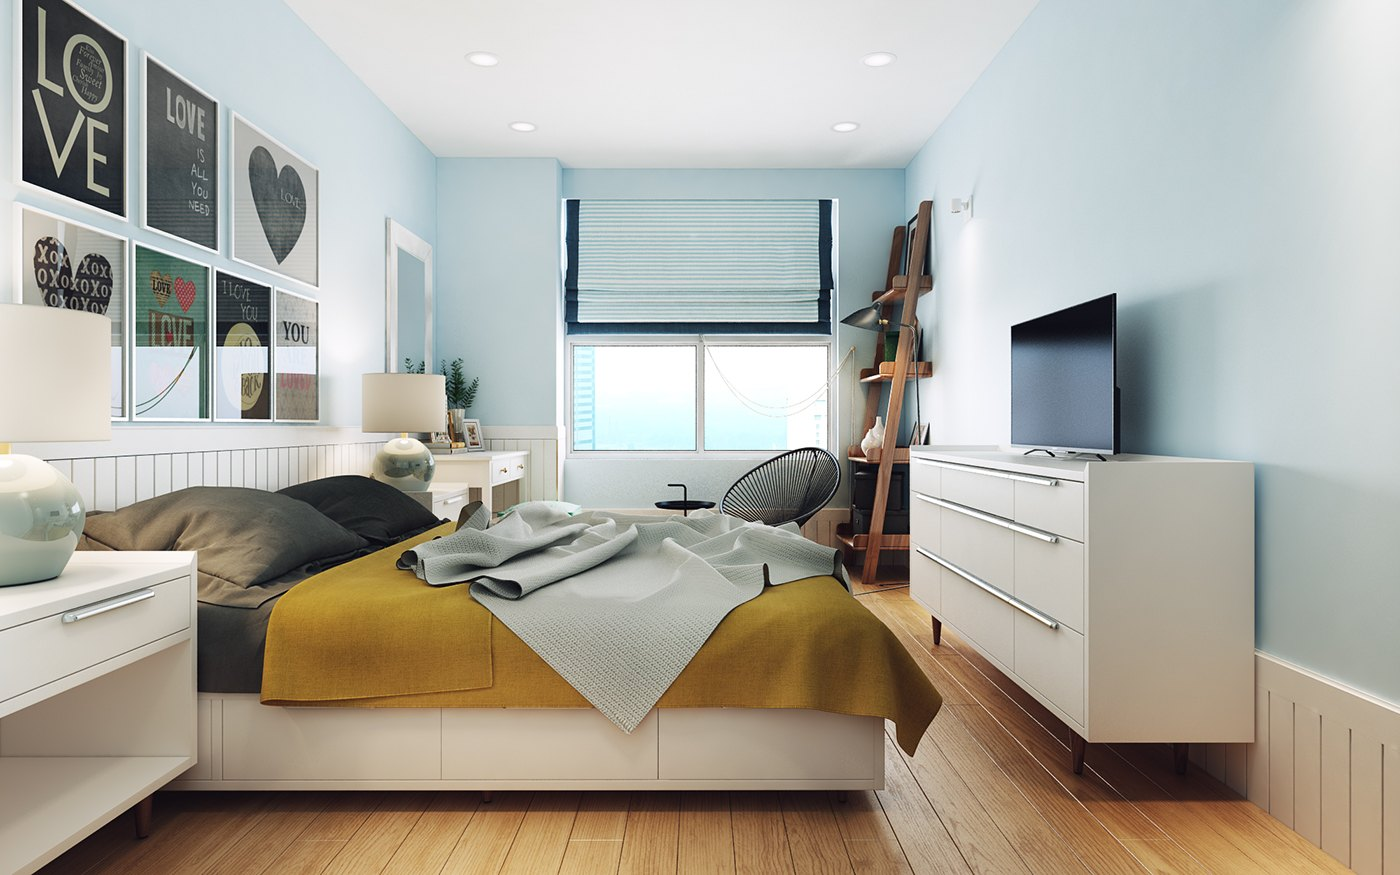 Blue And Yellow Bedroom Design - 10 stunning apartments that show off the beauty of nordic interior design